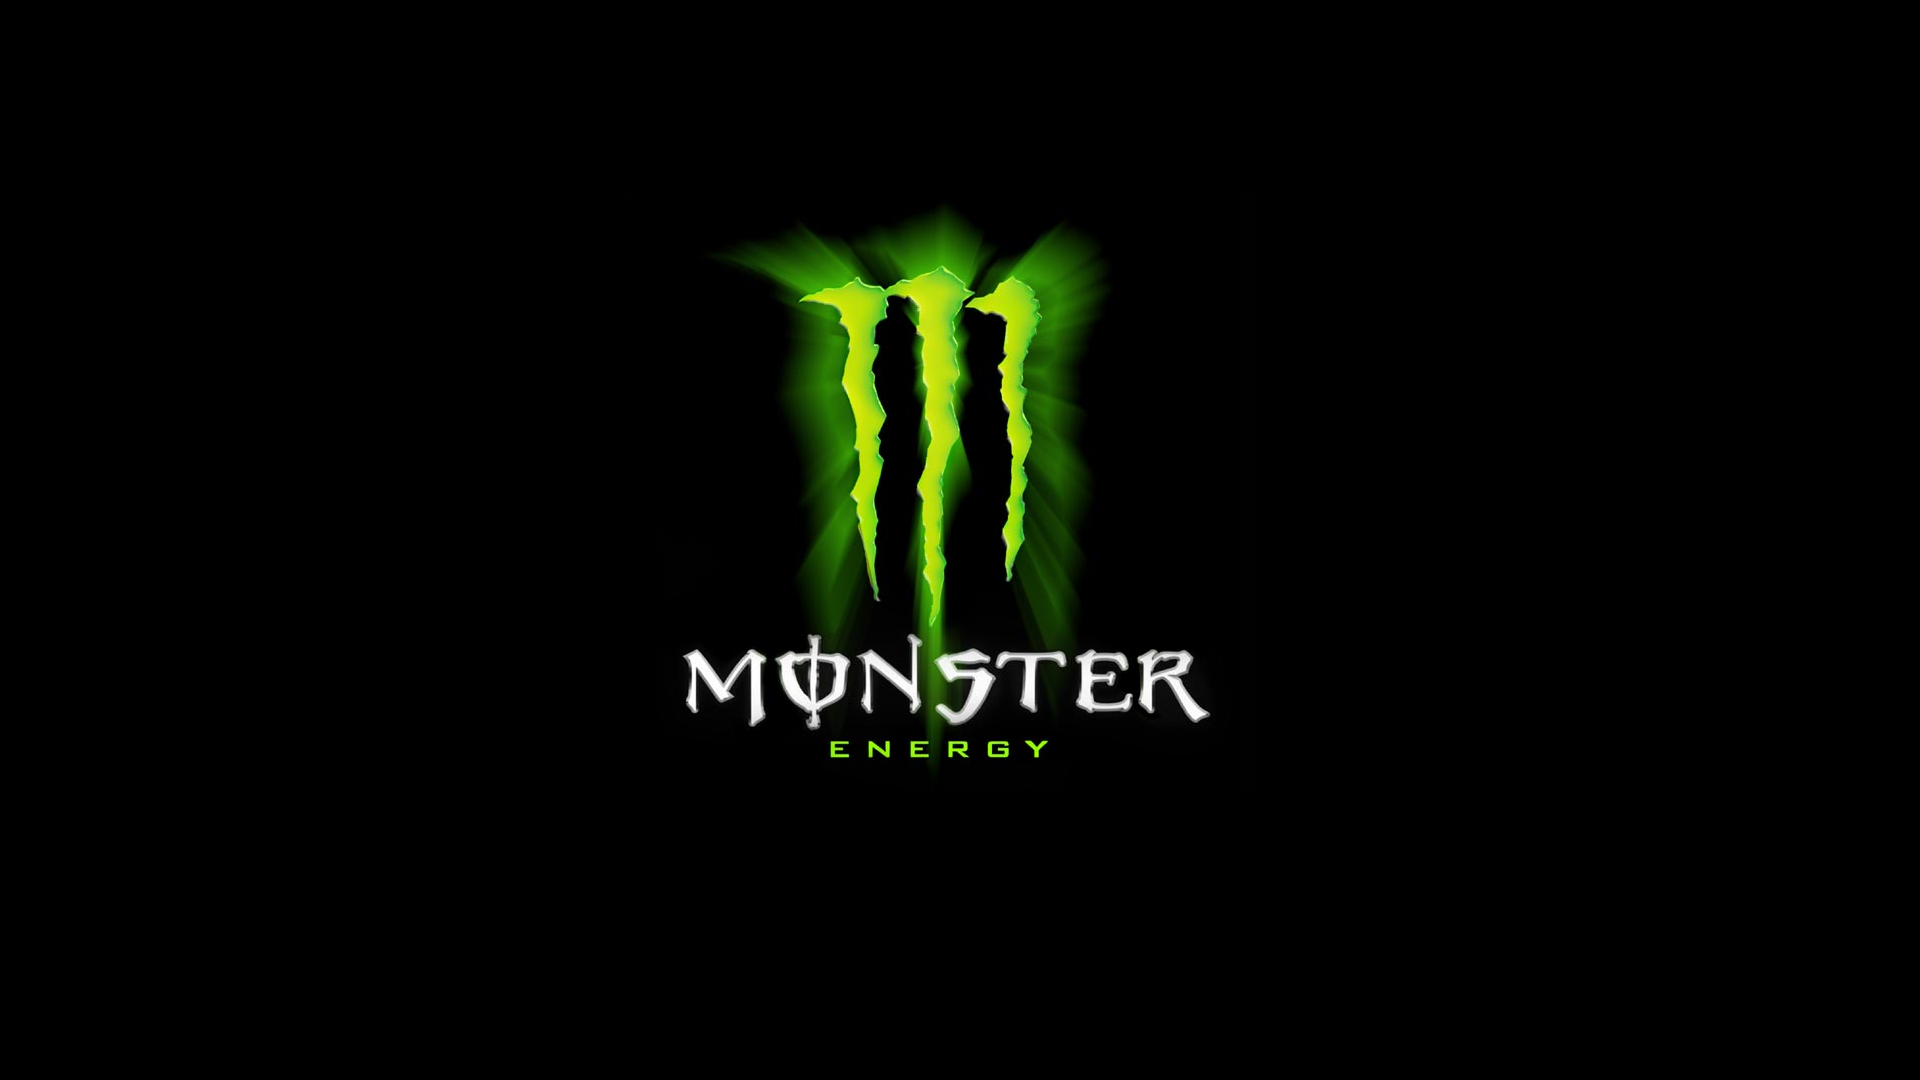 Monster Energy Logo Wallpaper is a hi res Wallpaper for pc 1920x1080